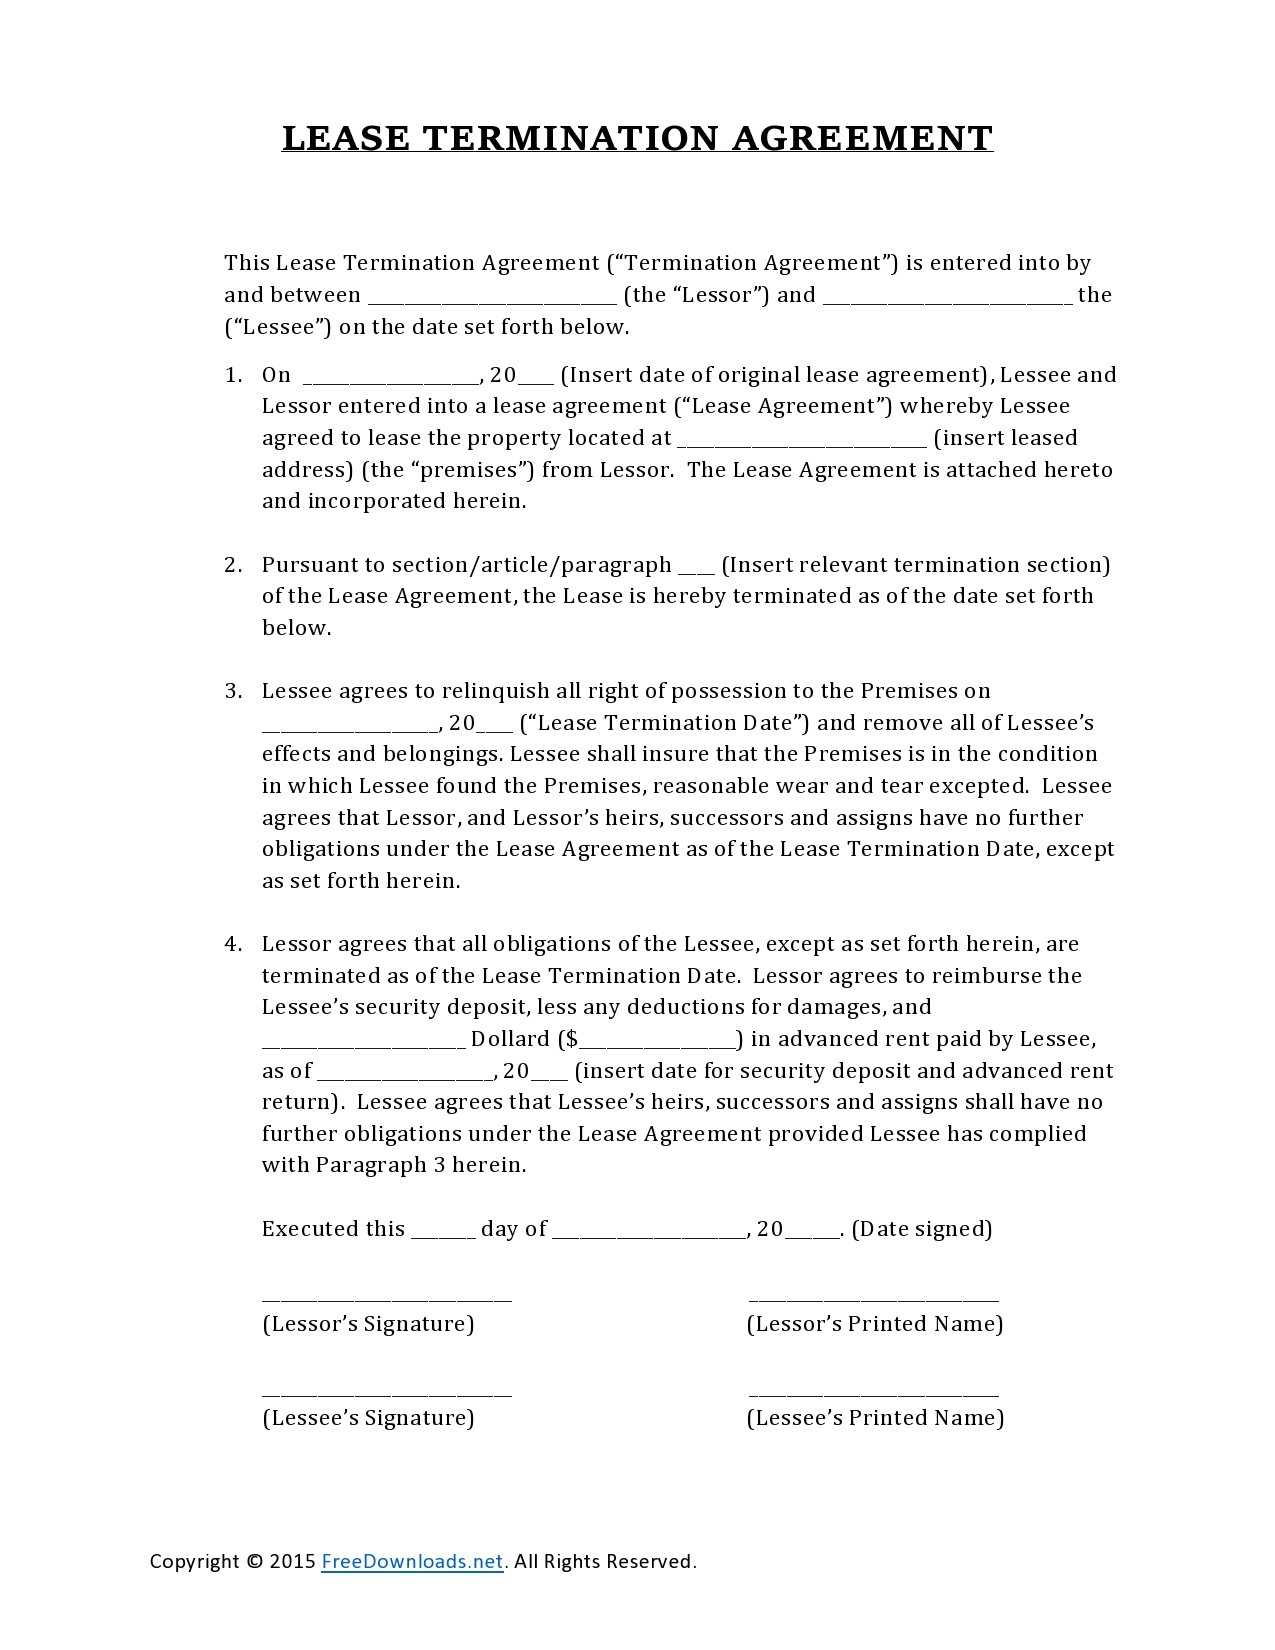 Free lease termination agreement 07